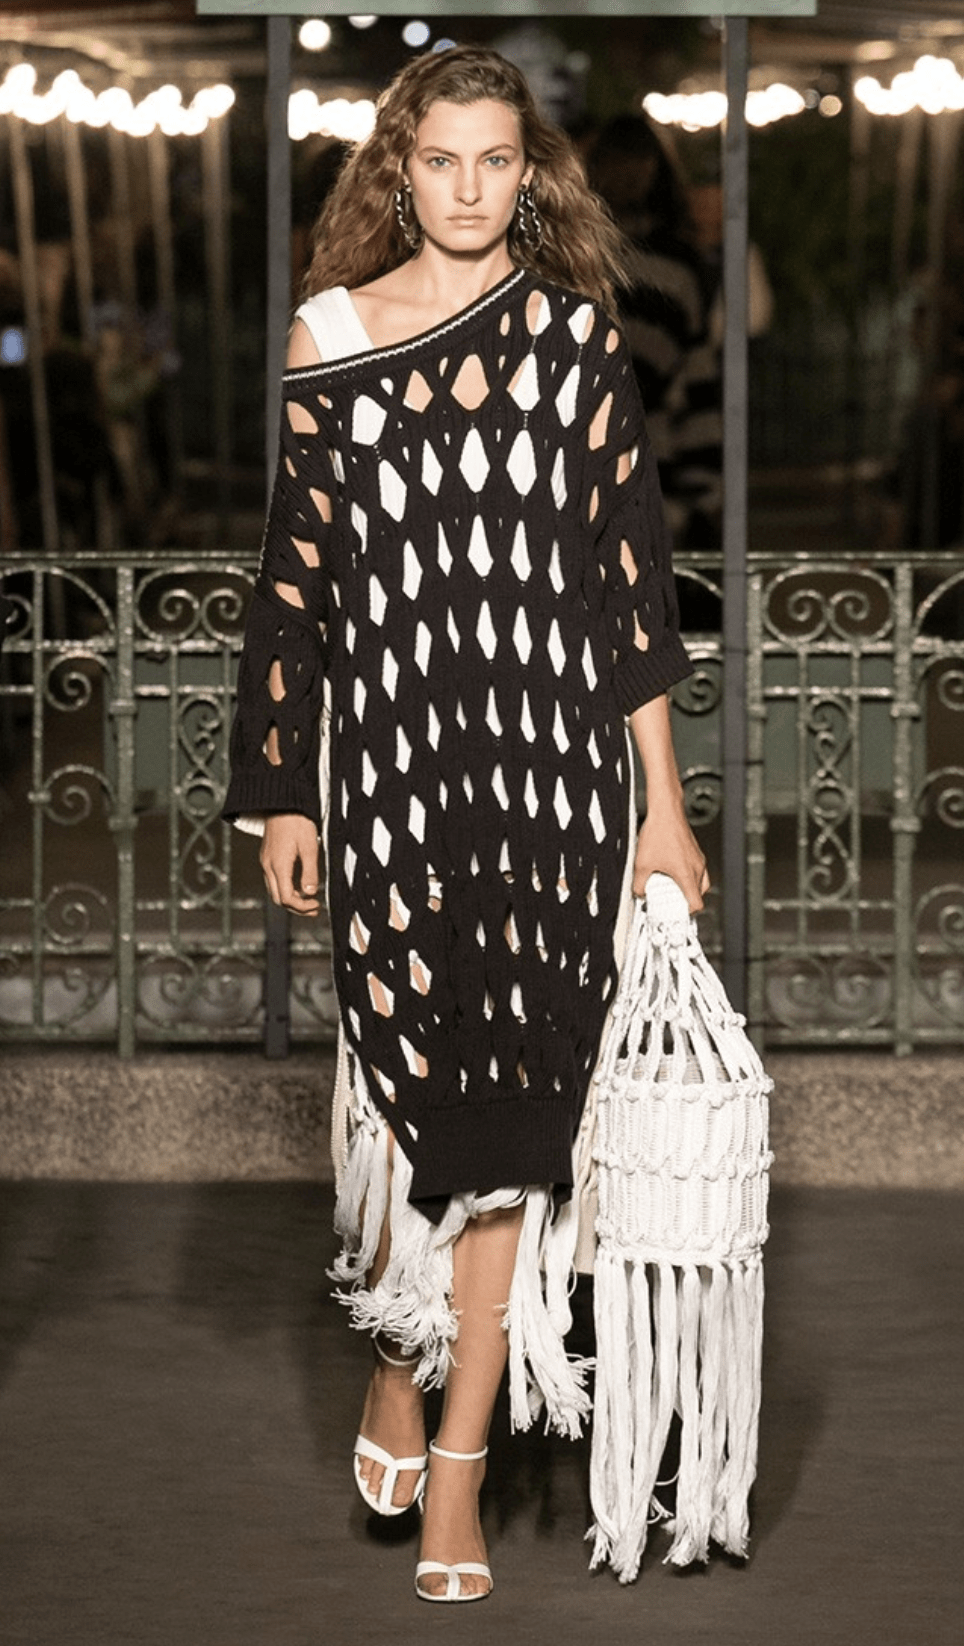 Model wearing a weaved poncho and carrying a weaved basket bag